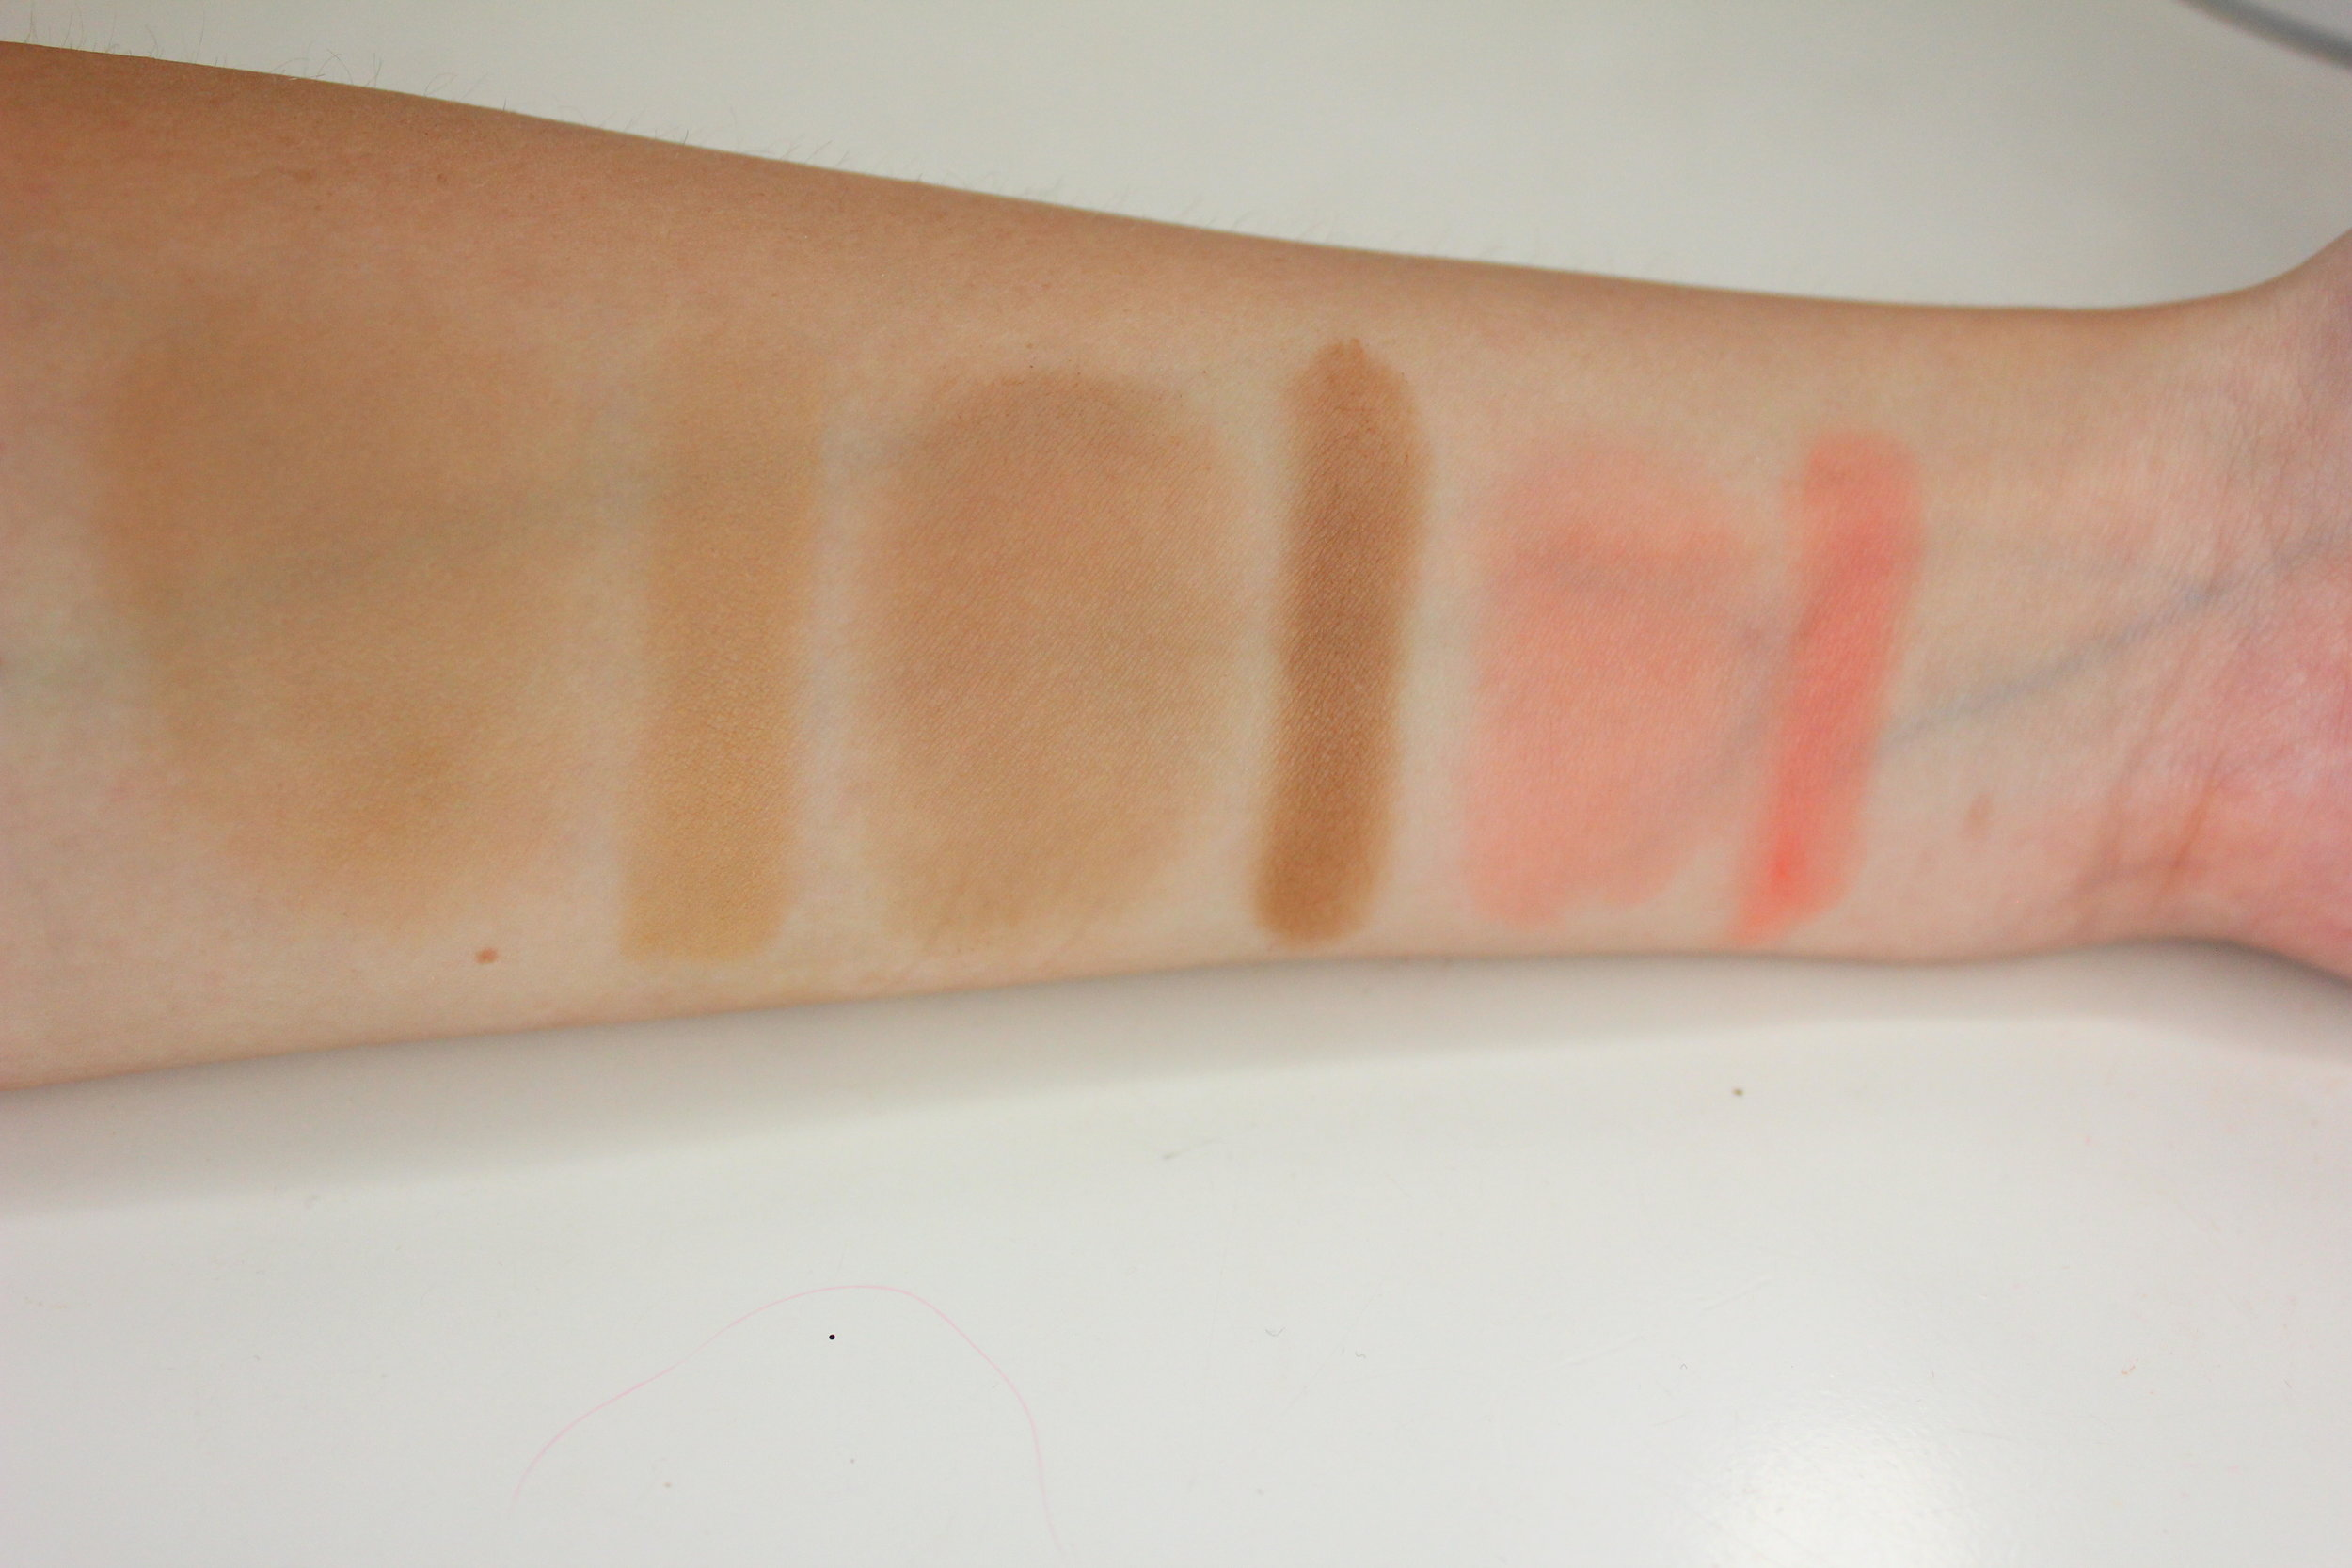 Sedona Lace Contour and Blush Palette swatches contour and blush